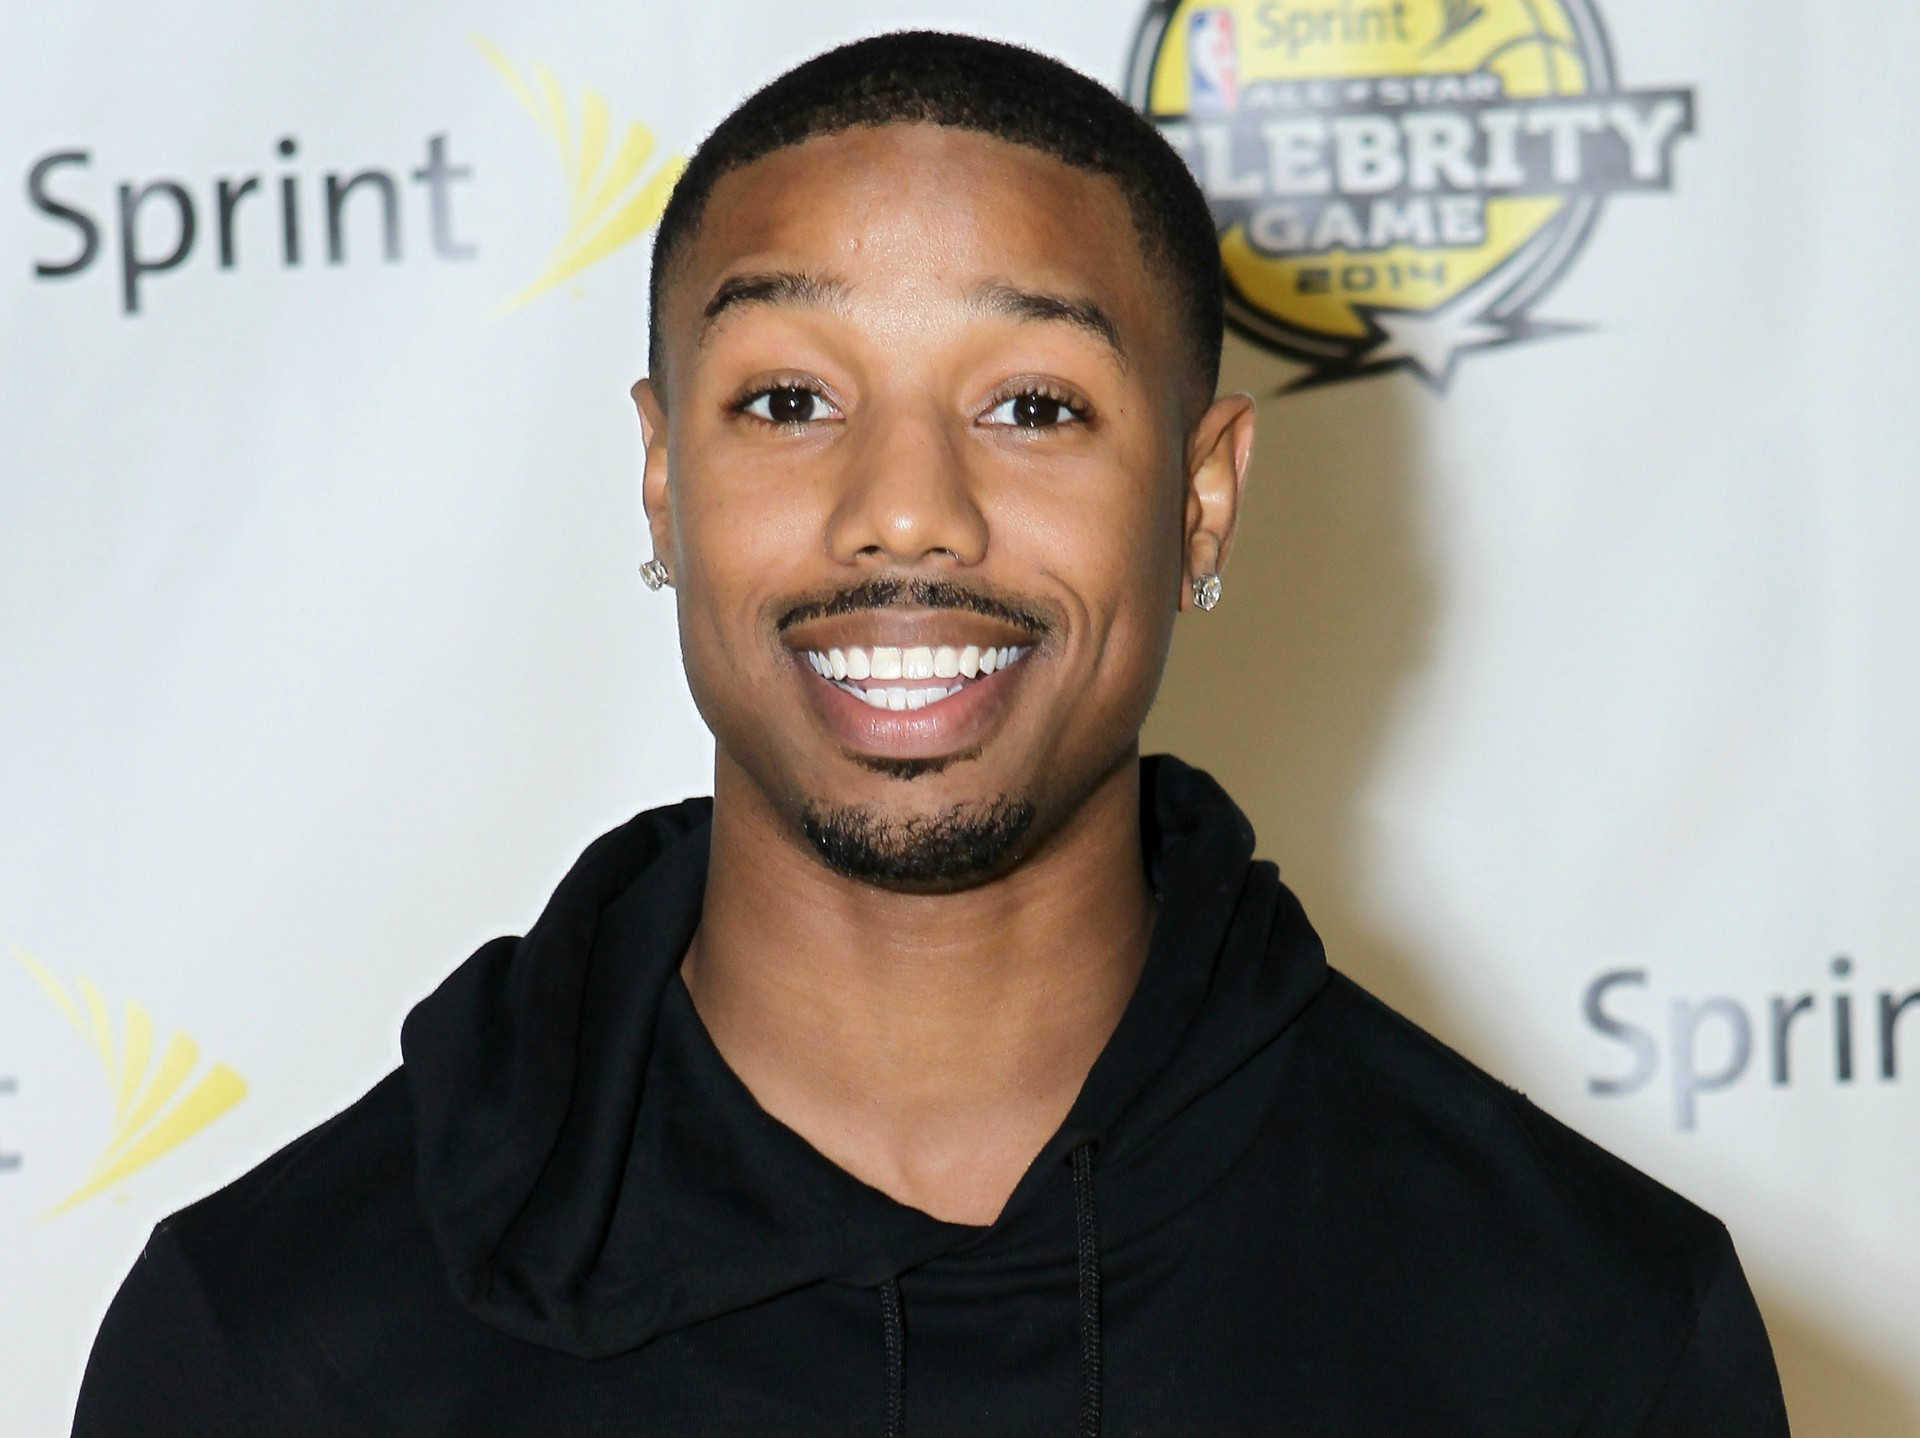 O ator Michael B. Jordan (Foto: Getty Images)